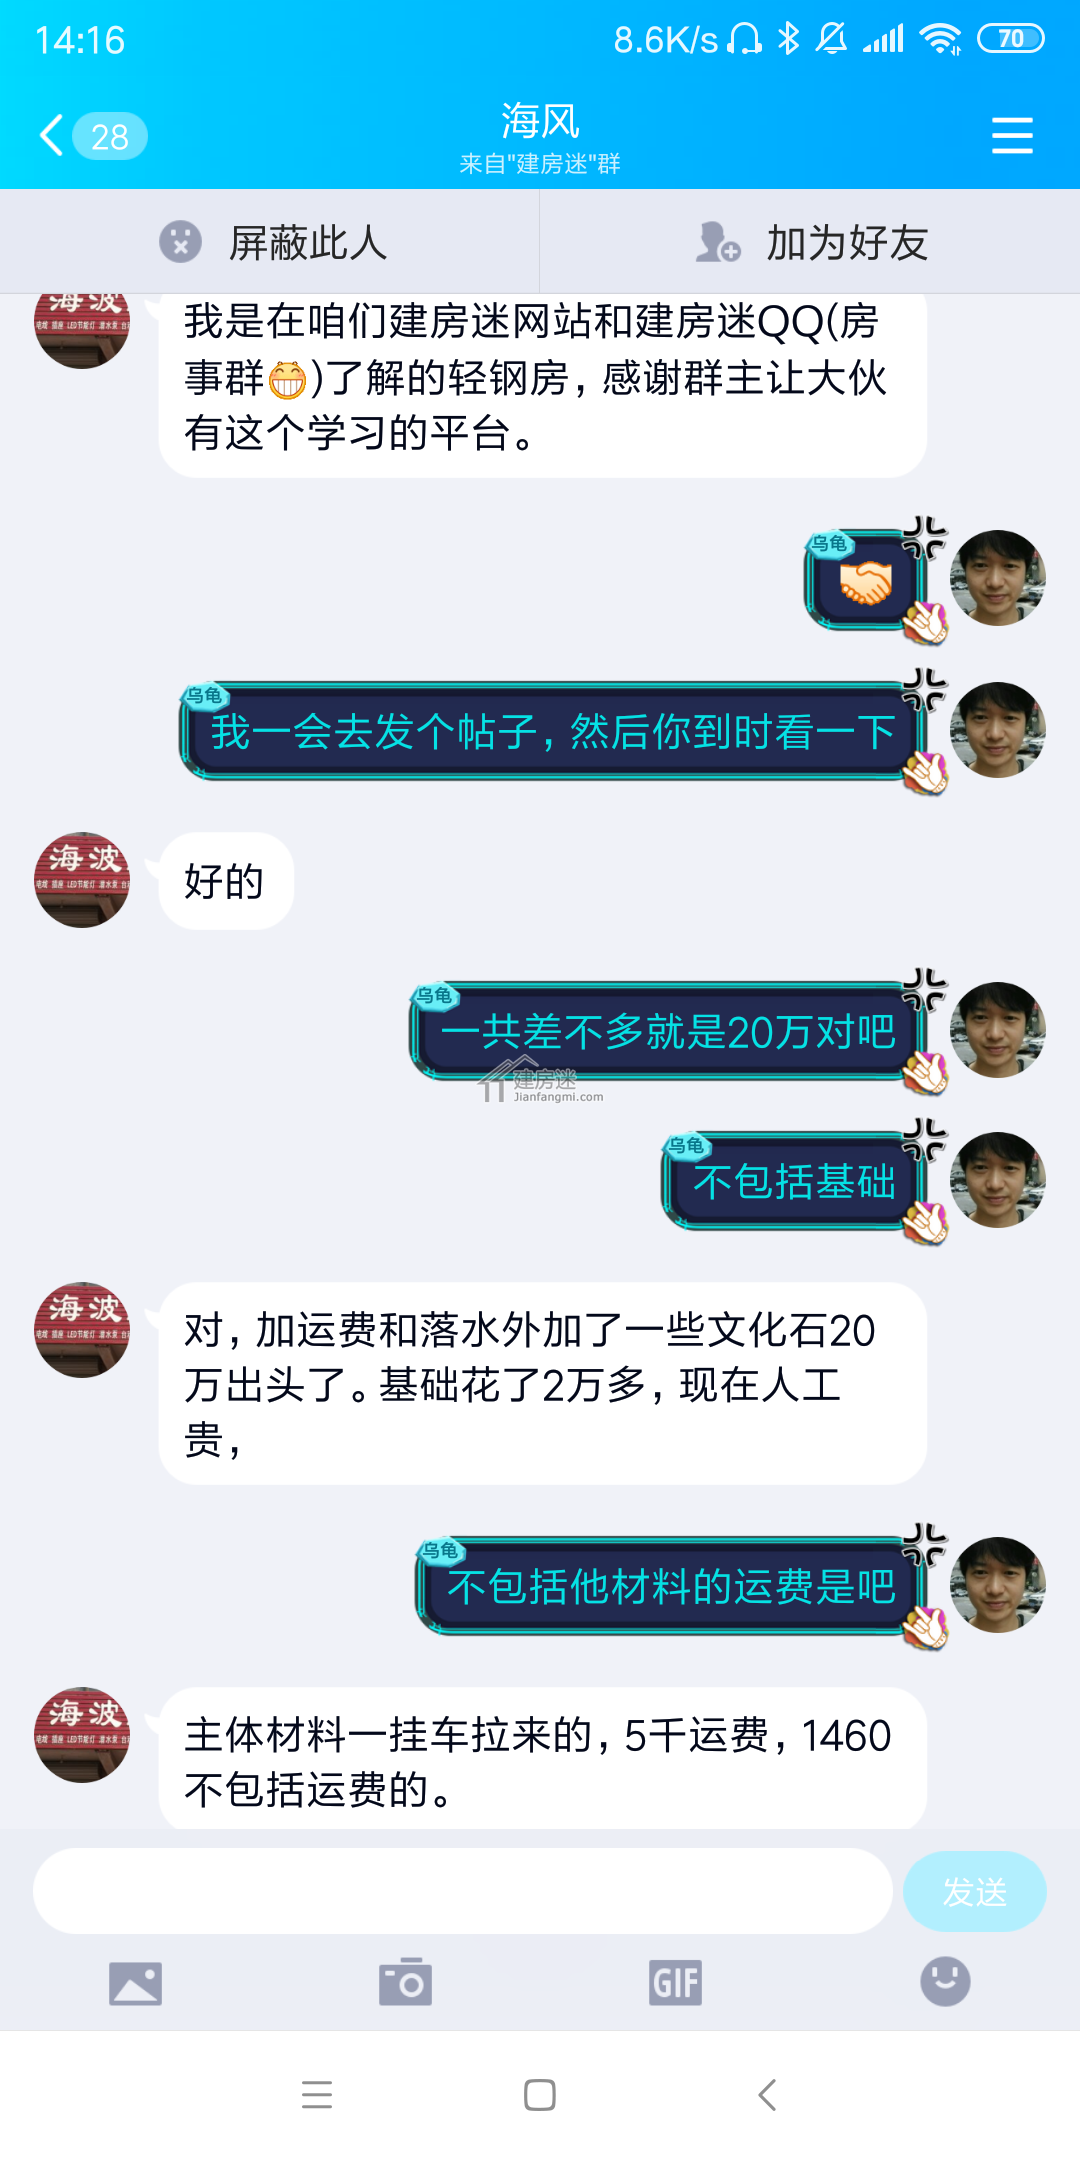 Screenshot_2019-06-05-14-16-17-266_com.tencent.mo.png